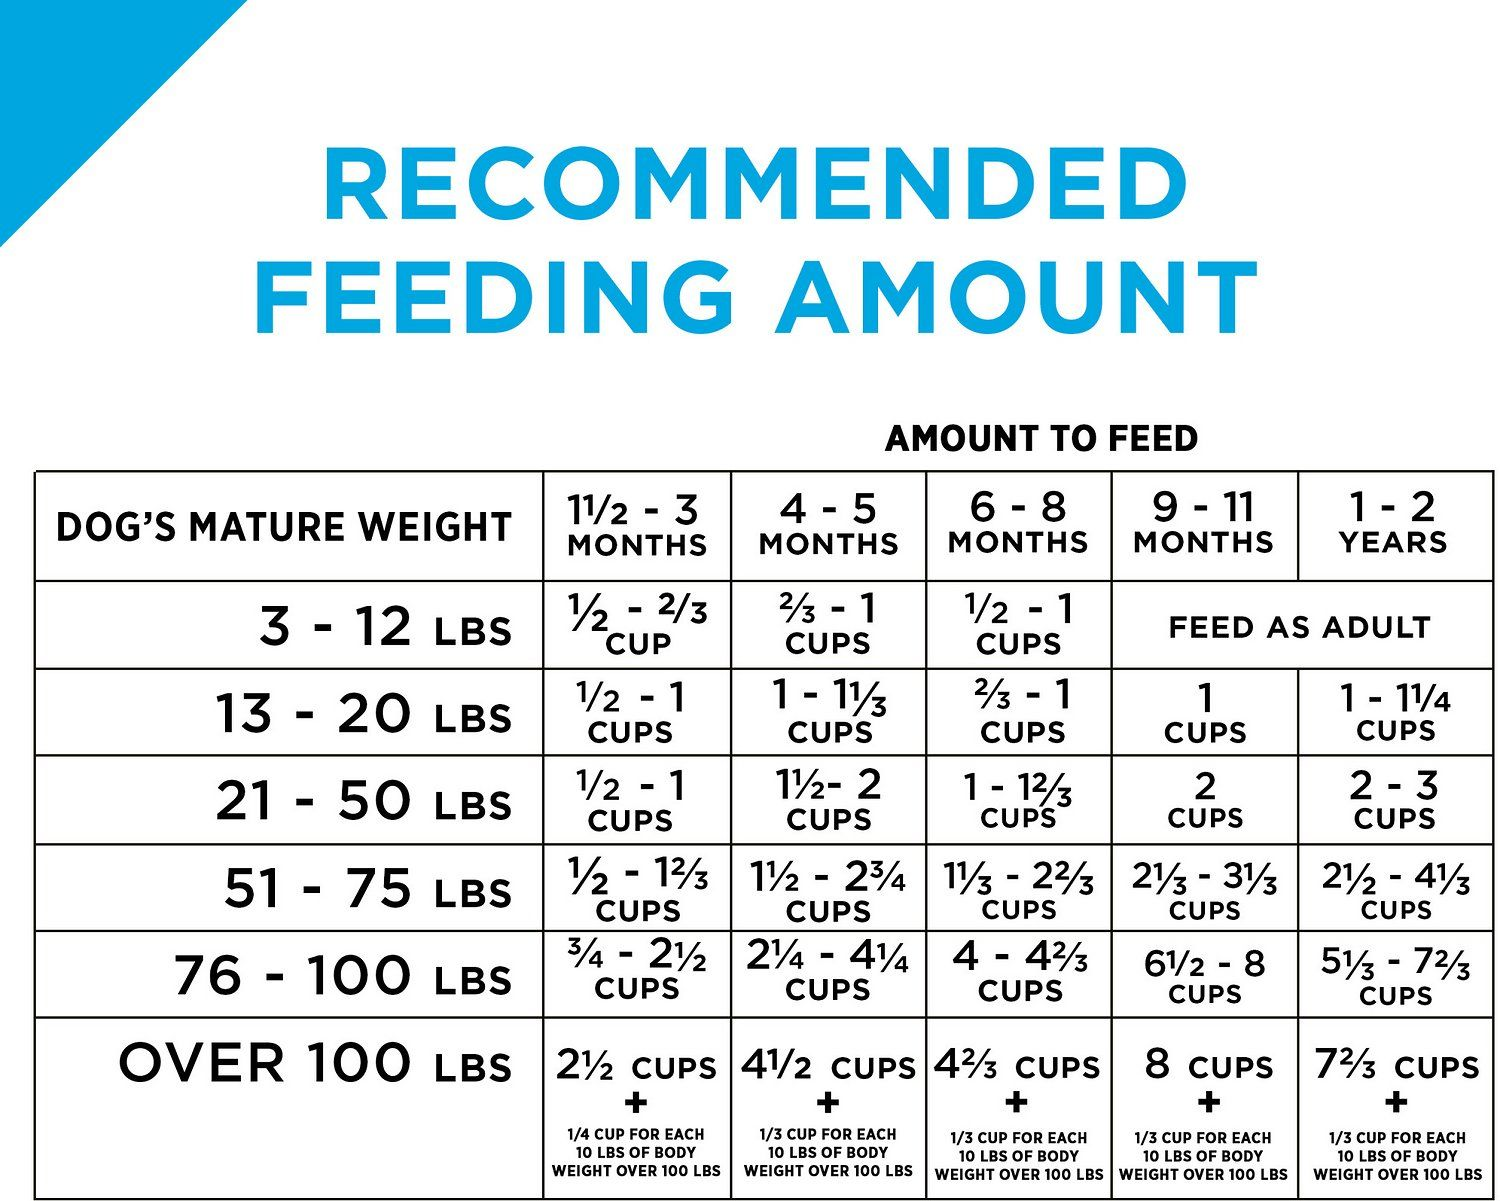 Purina Pro Plan Focus Puppy Food Feeding Chart In 2020 Pro Plan Dog Food Puppy Feeding Schedule Best Puppy Food